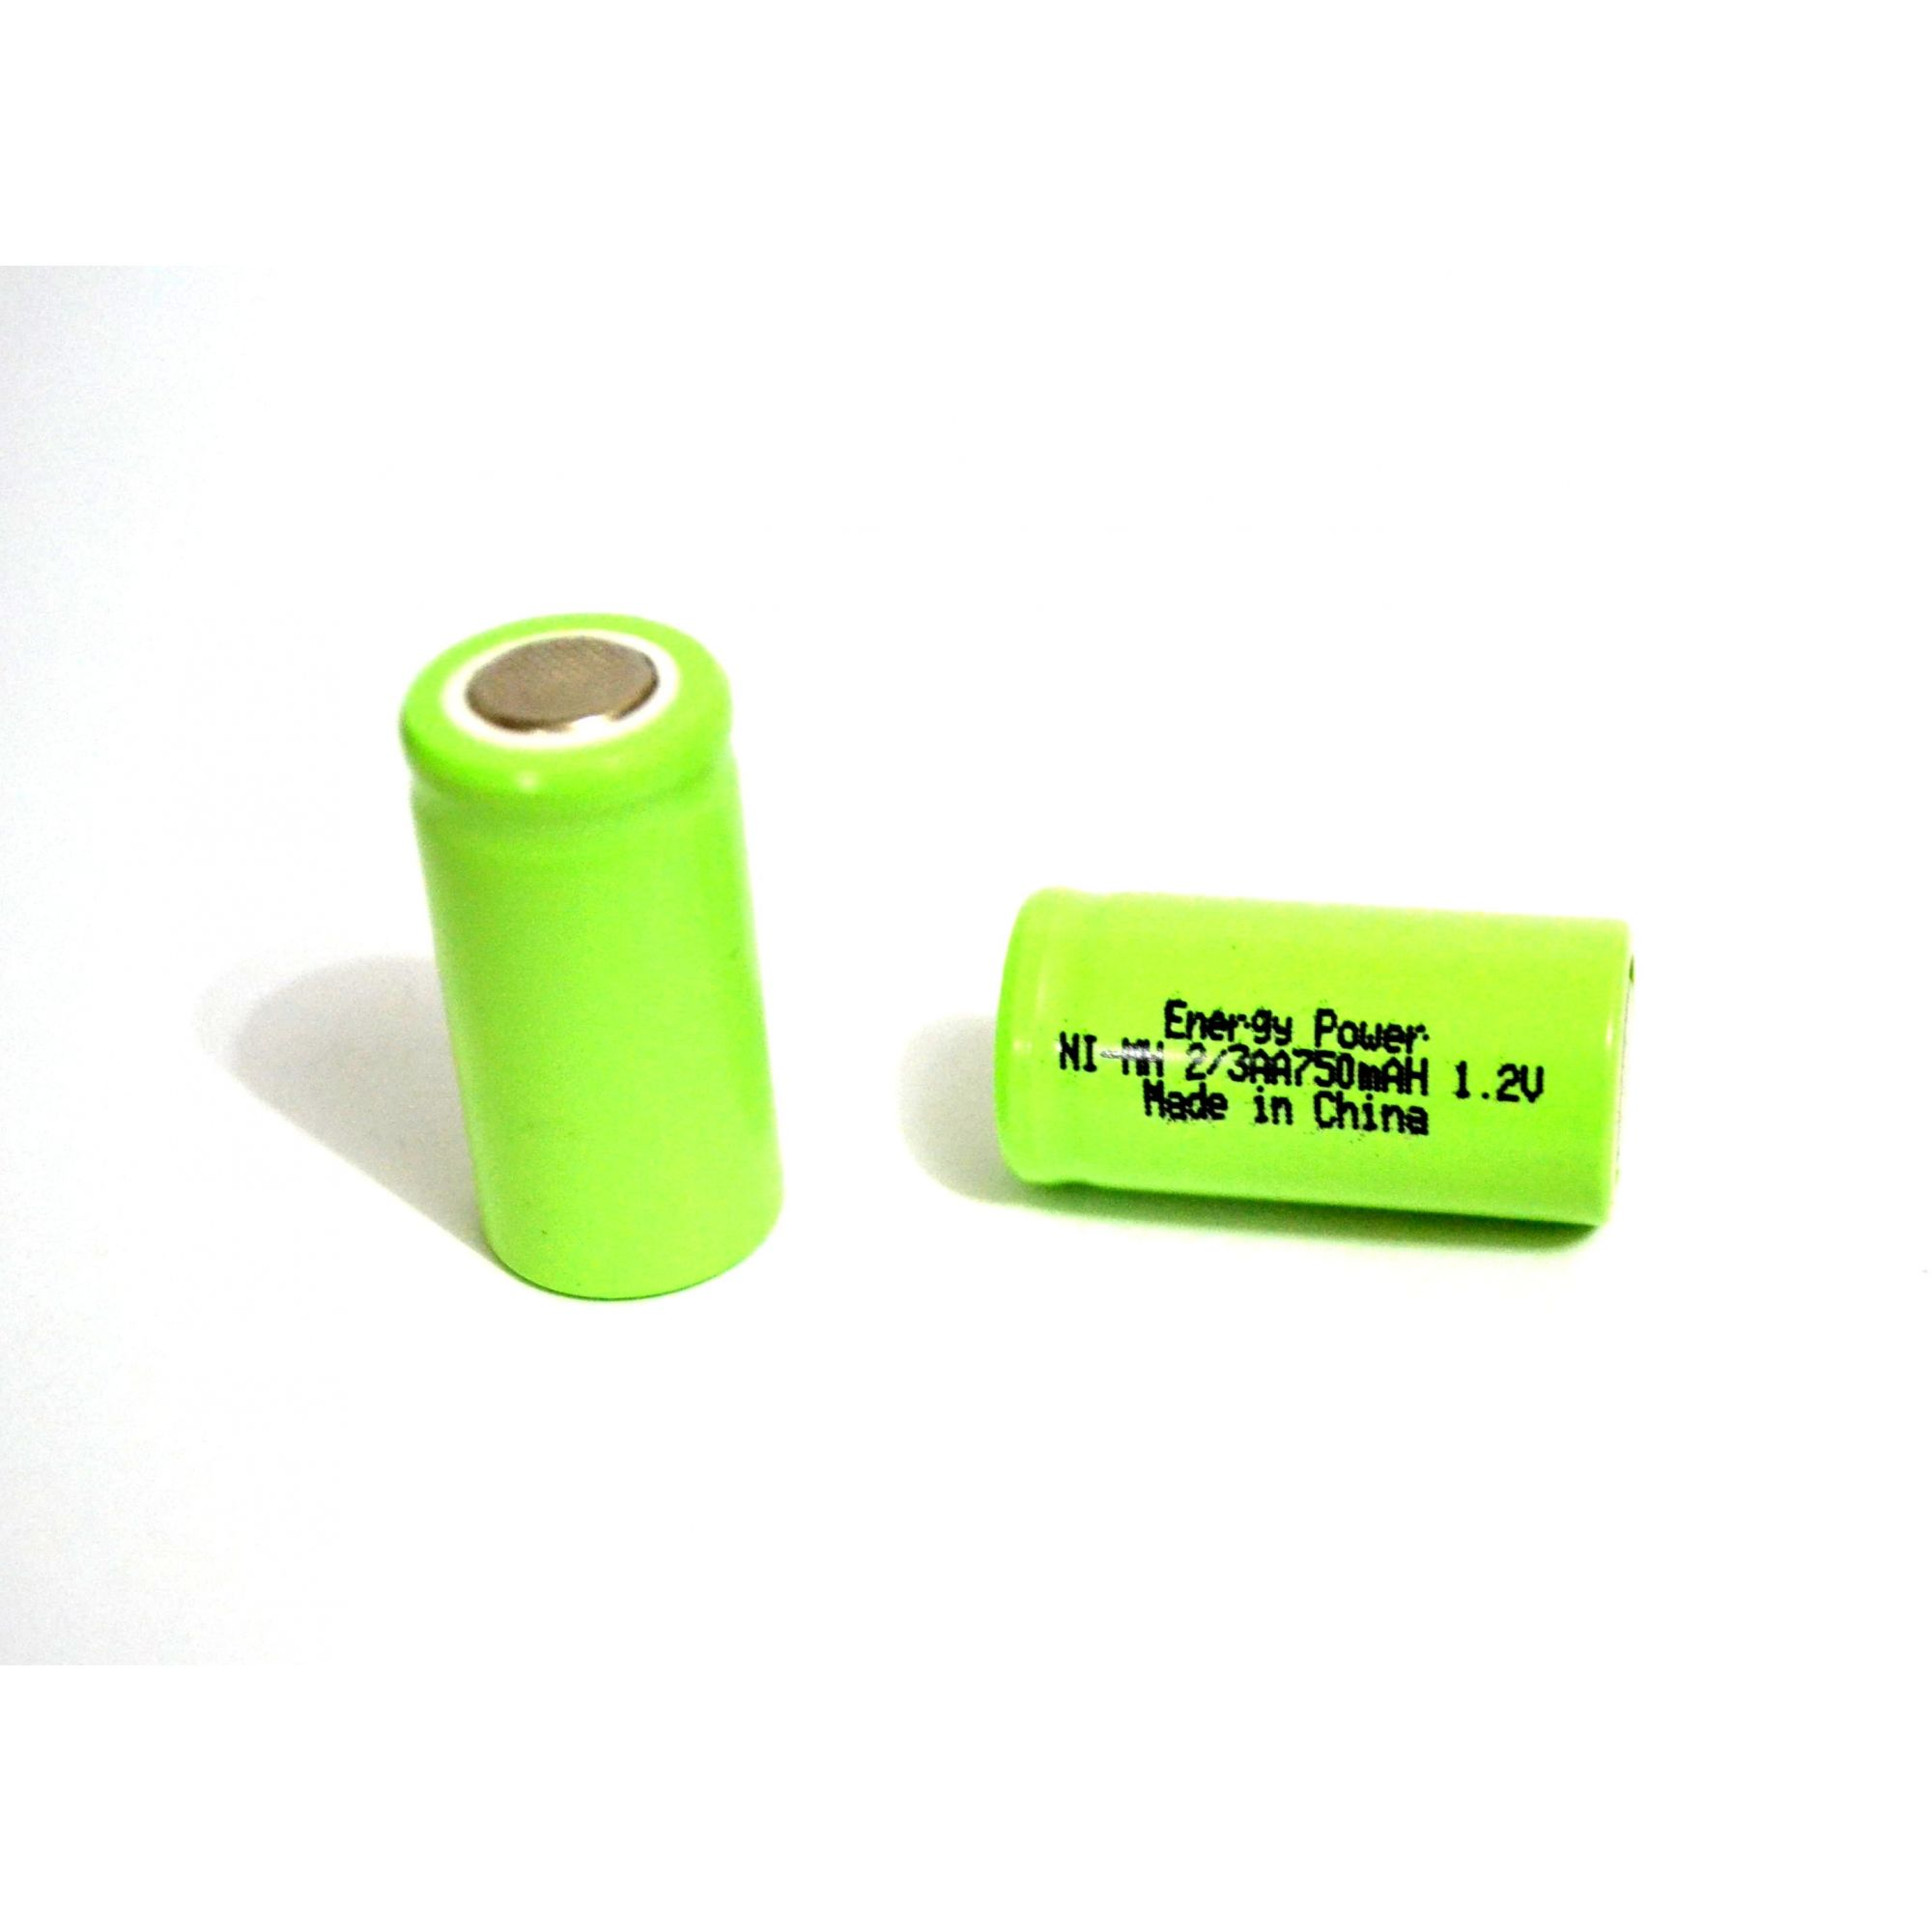 BATERIA ENERGY POWER  2/3AA 750MAH 1,2V NI-MH